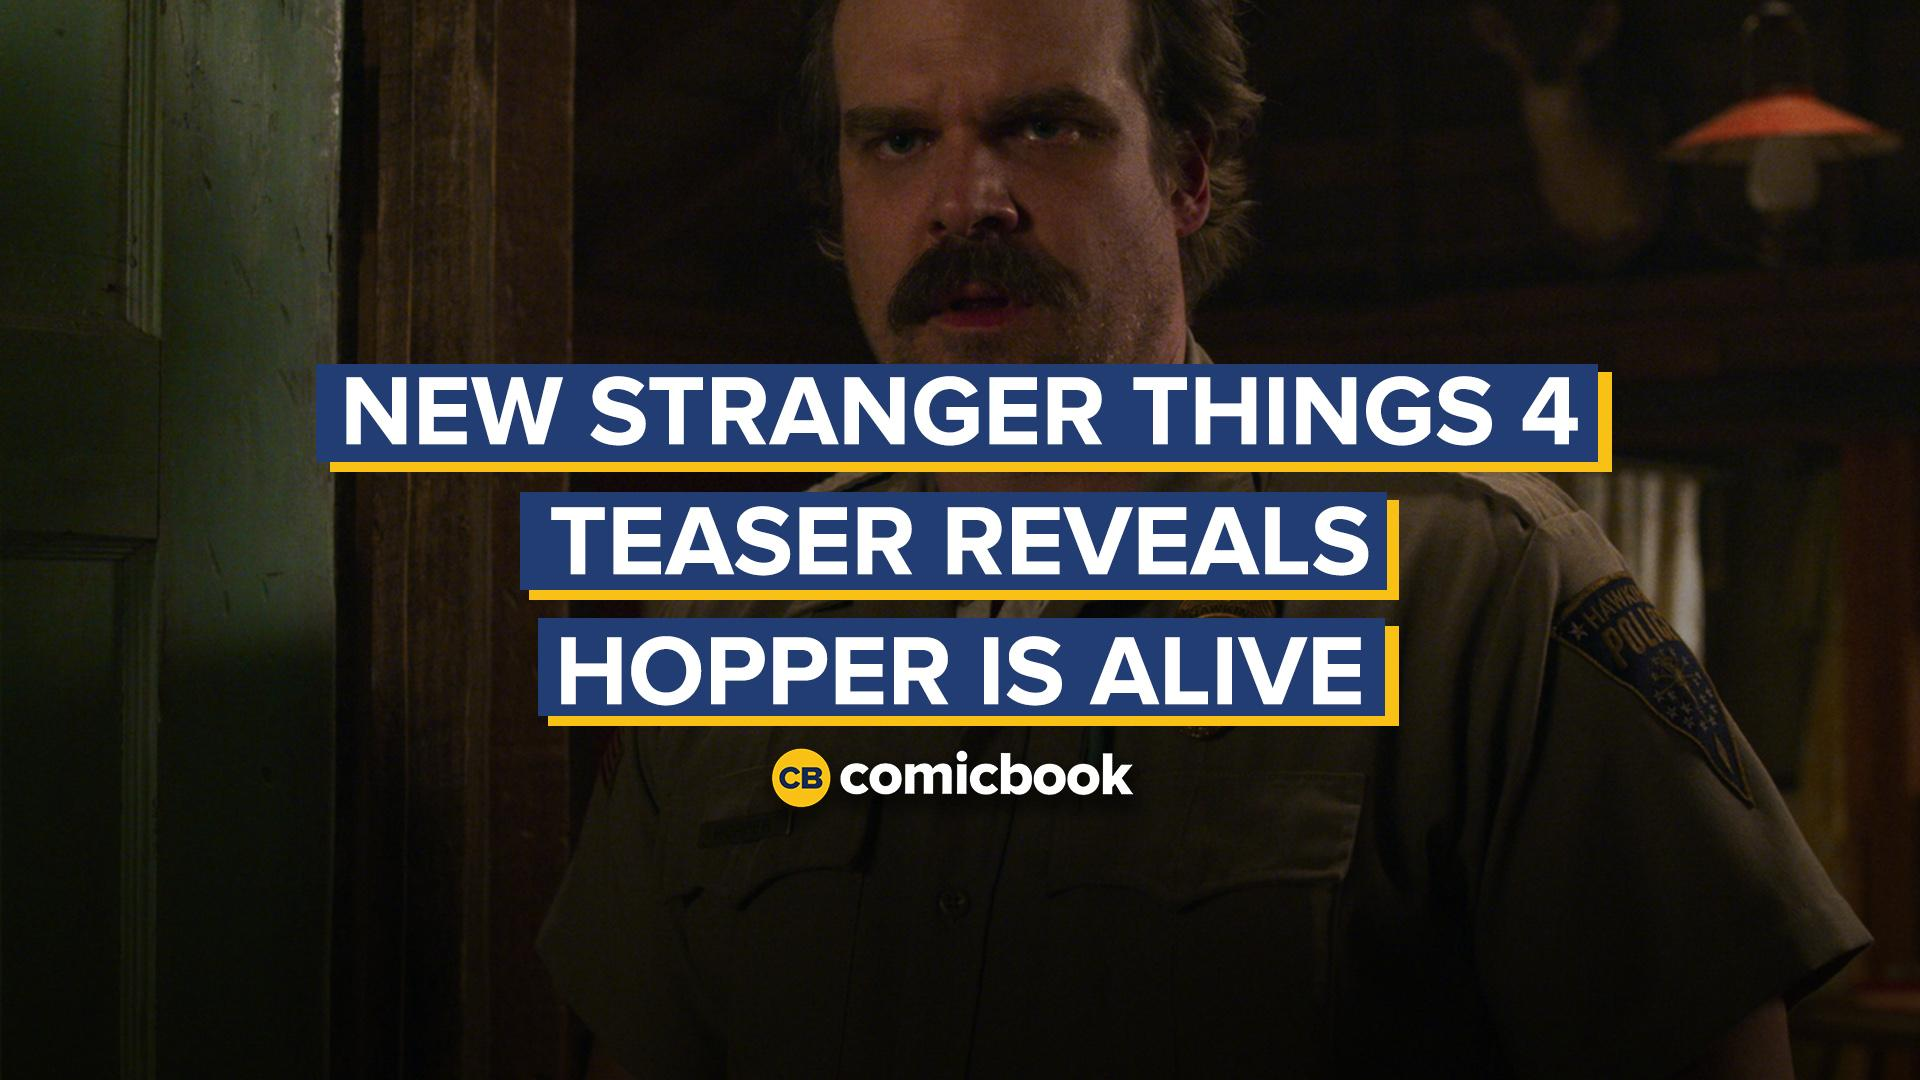 New Stranger Things 4 Teaser Reveals Hopper is Alive in Russia screen capture